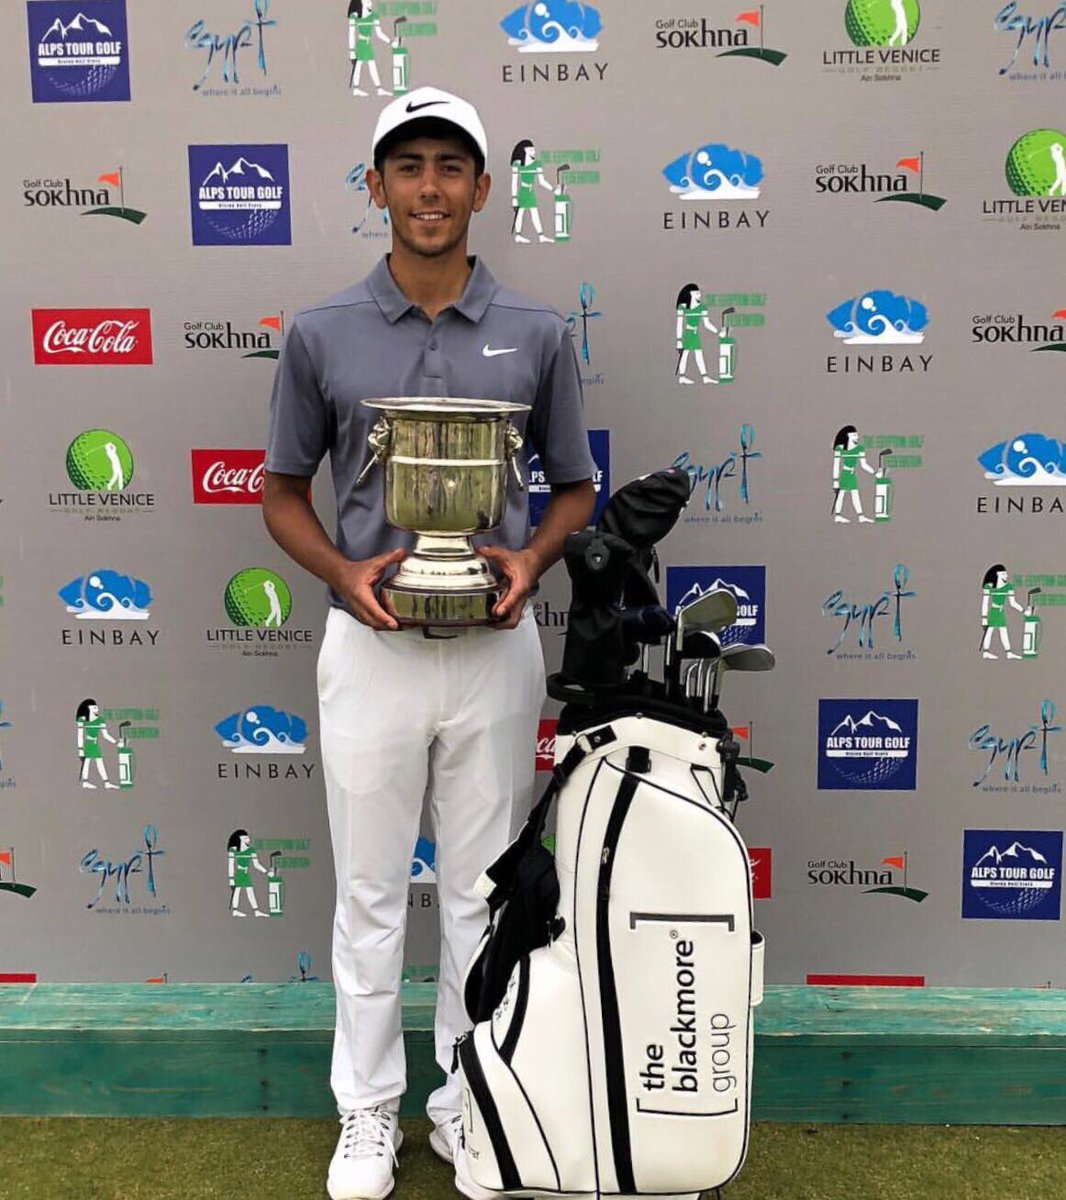 Incredible news to wake up to . @modestgolf player @JackSinghBrar has was the Red Sea event on the @alpstourgolf by 5 shots  . Proud of you